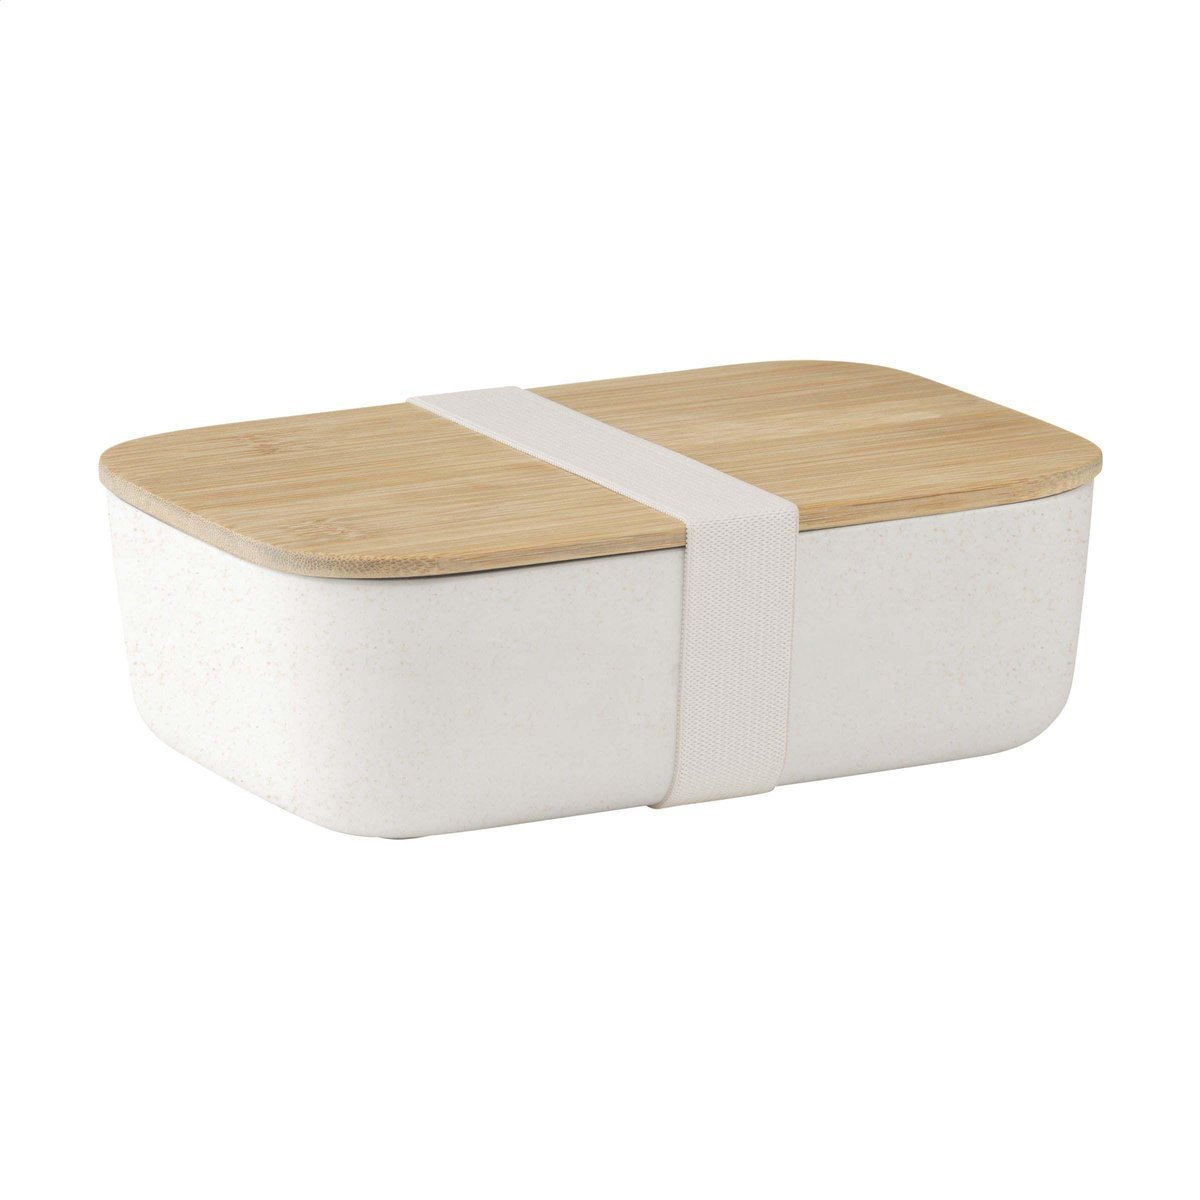 Retulp - Ecobox - Lunchbox - Bamboe - Wit - Lunch